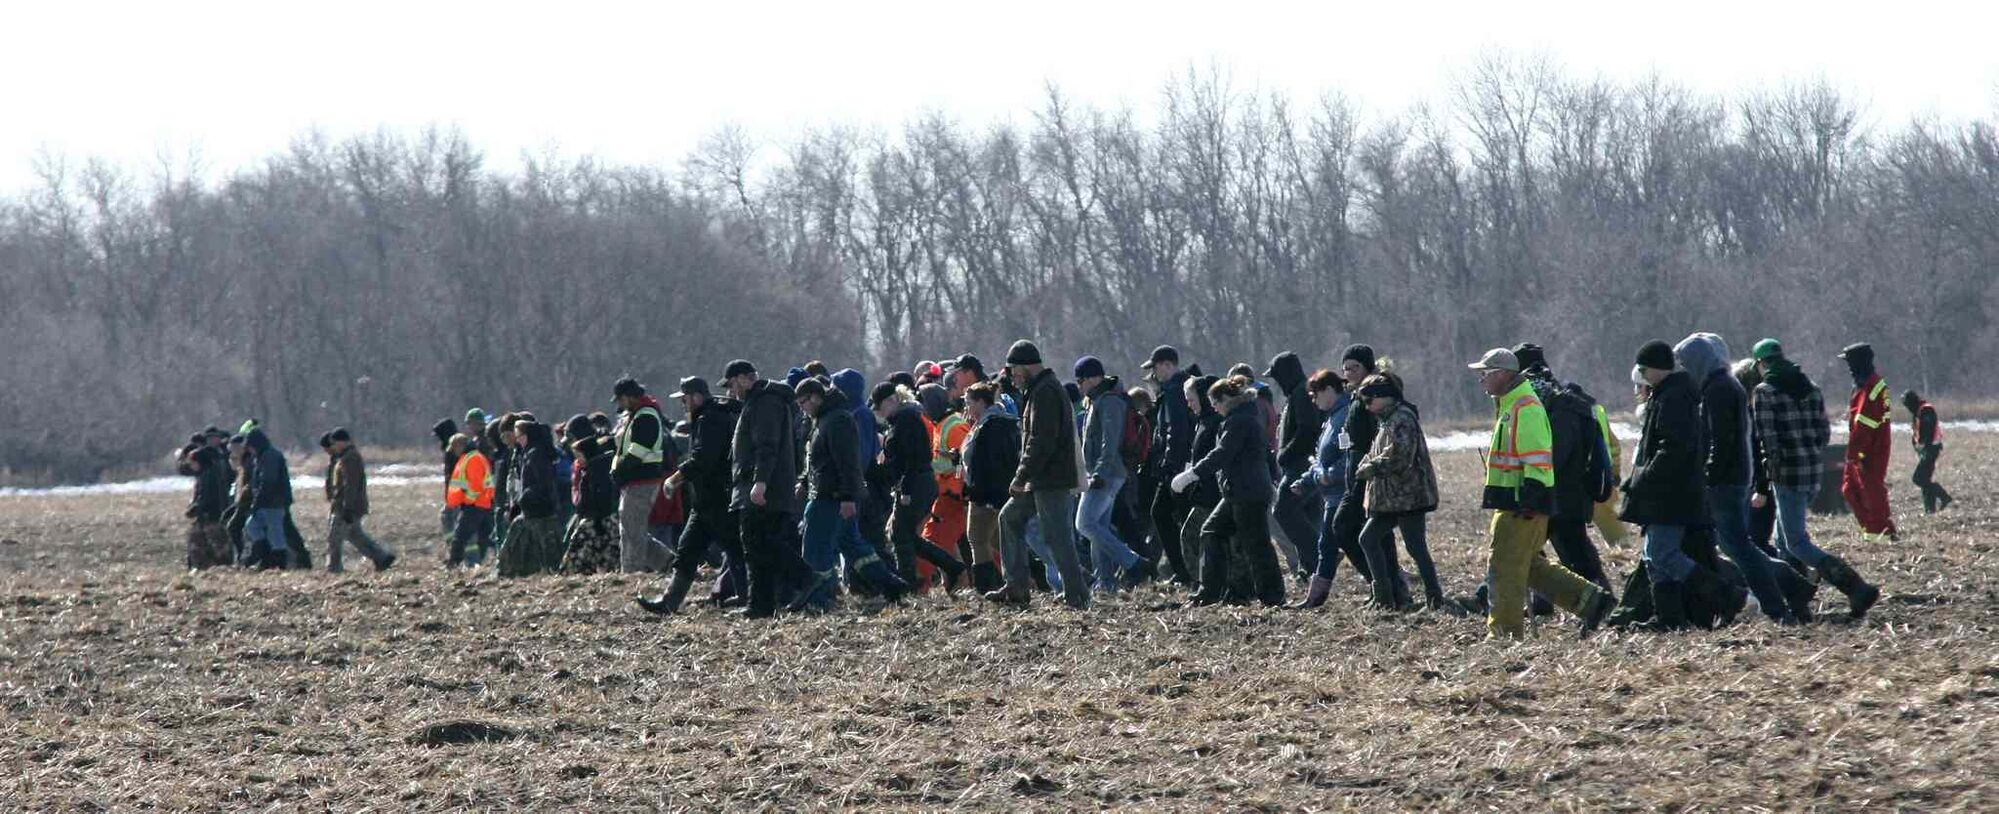 A second shift of volunteers made up of dozens of neighbours, friends and relatives begin searching in close formation in the fields surrounding the family home of two-year-old Chase Martens. The toddler went missing from the backyard of his home on Tuesday evening. (Matt Goerzen/Brandon Sun)